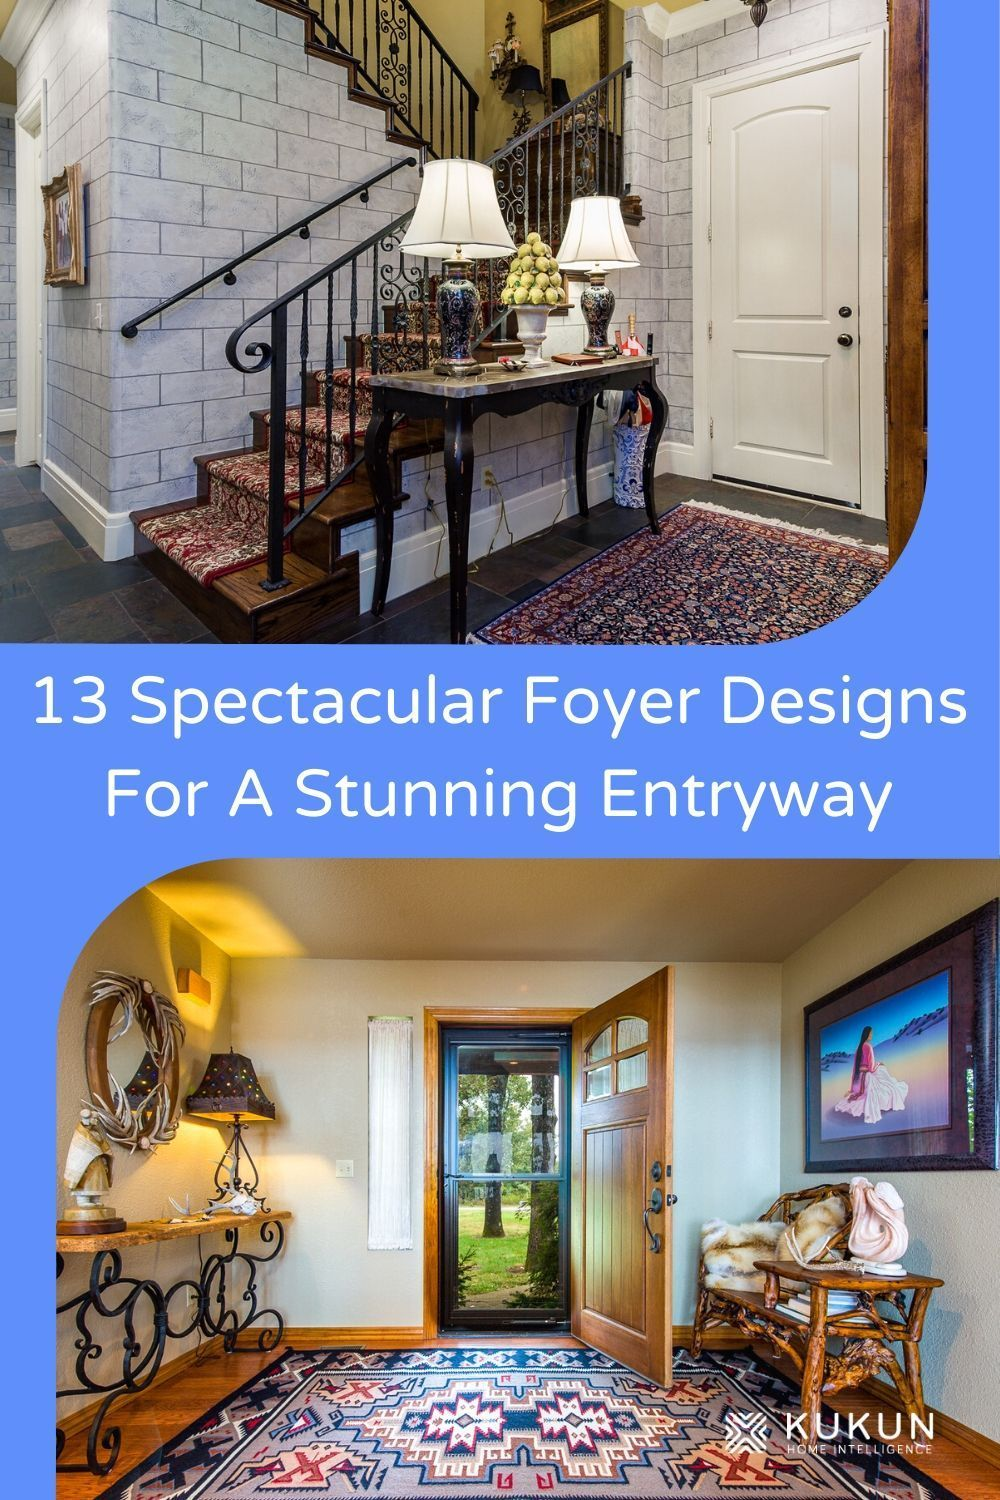 We have 13 great foyer design ideas that will make your guests go wow with their charm and creativity. Be inspired by these clever design ideas for your next home renovation. #FoyerDesignIdeas #HomeDesignIdeas #HomeEntrance